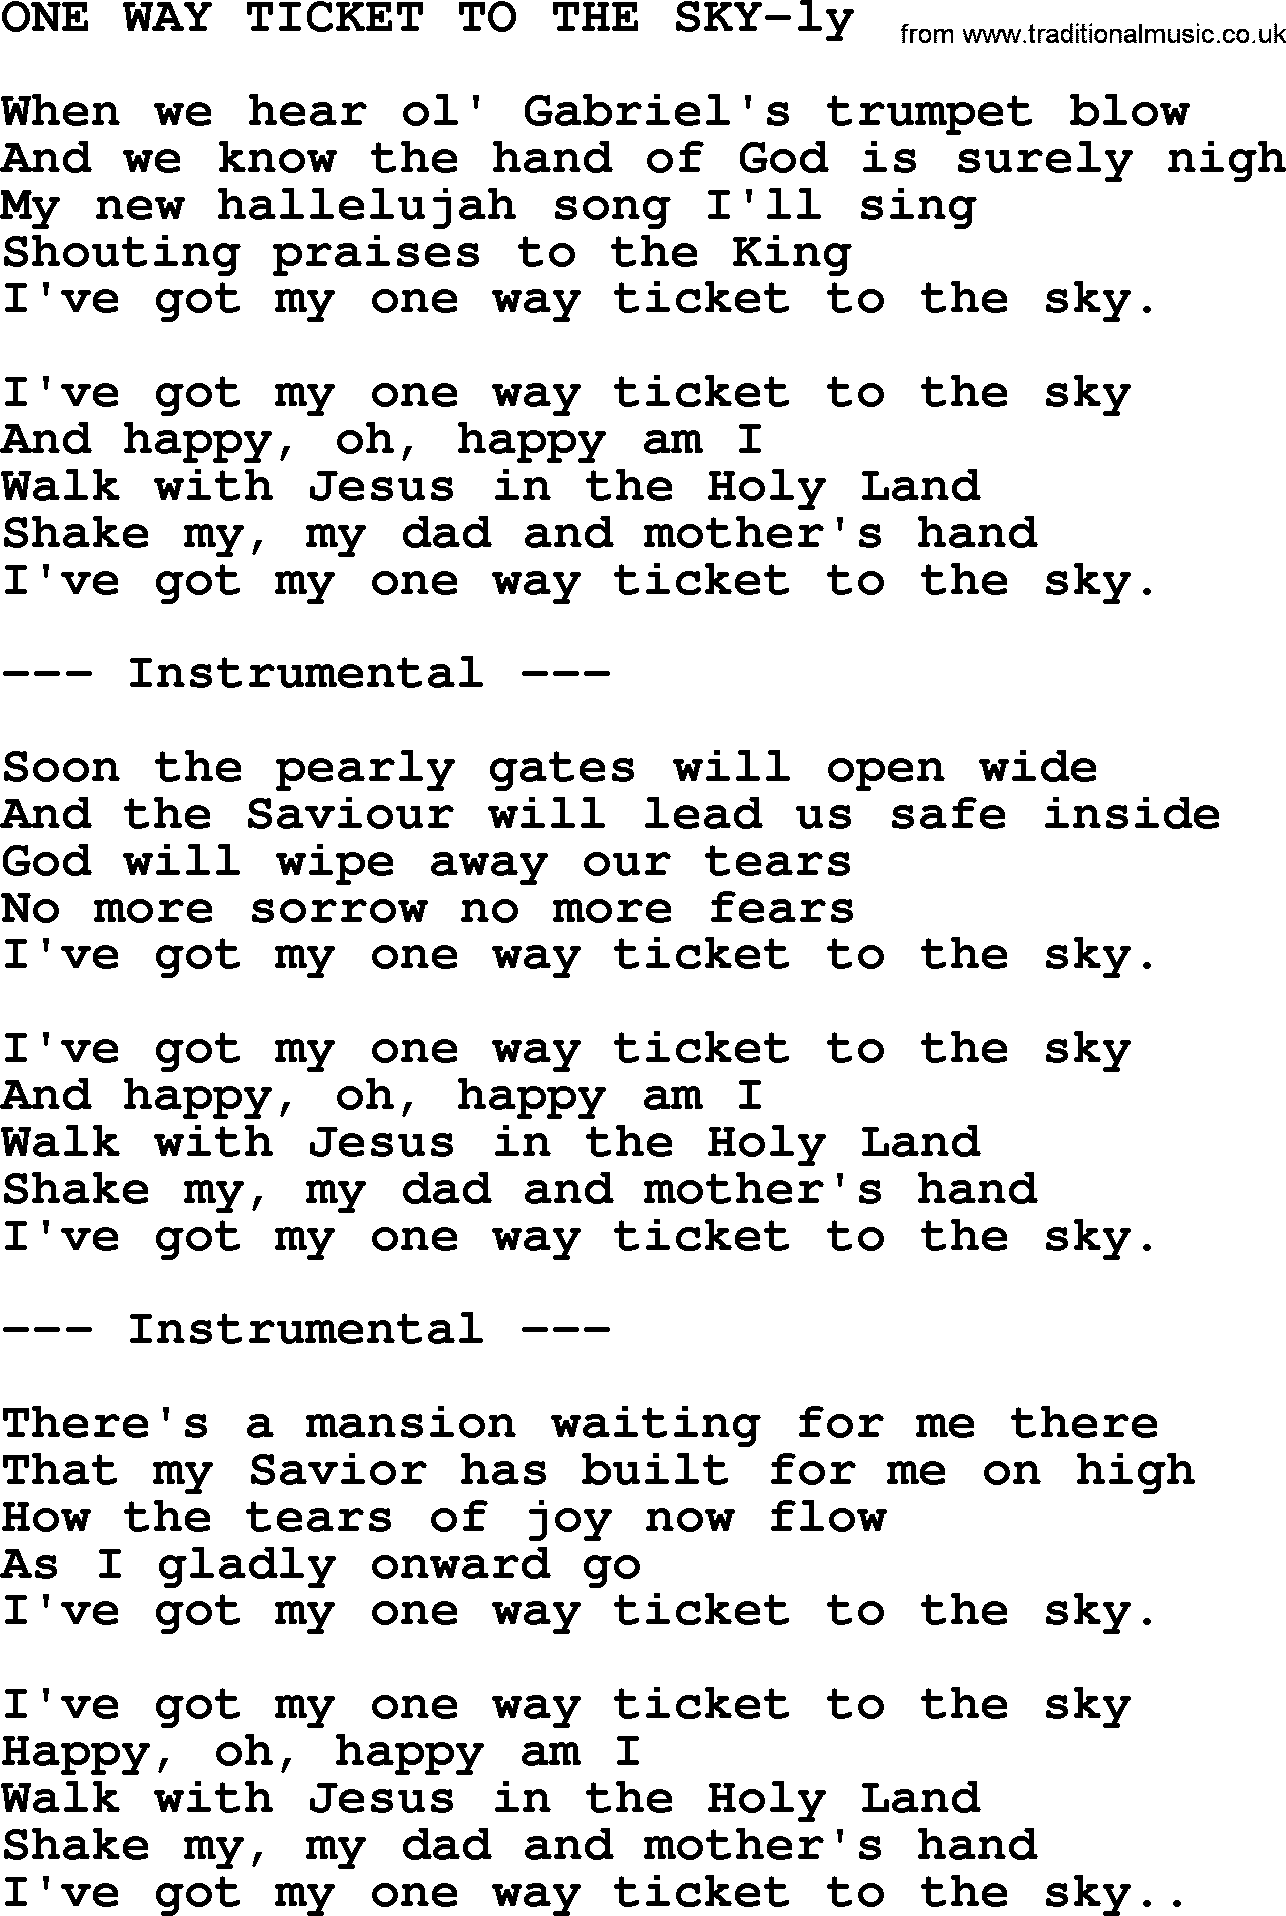 Hank Williams Song One Way Ticket To The Sky Lyrics